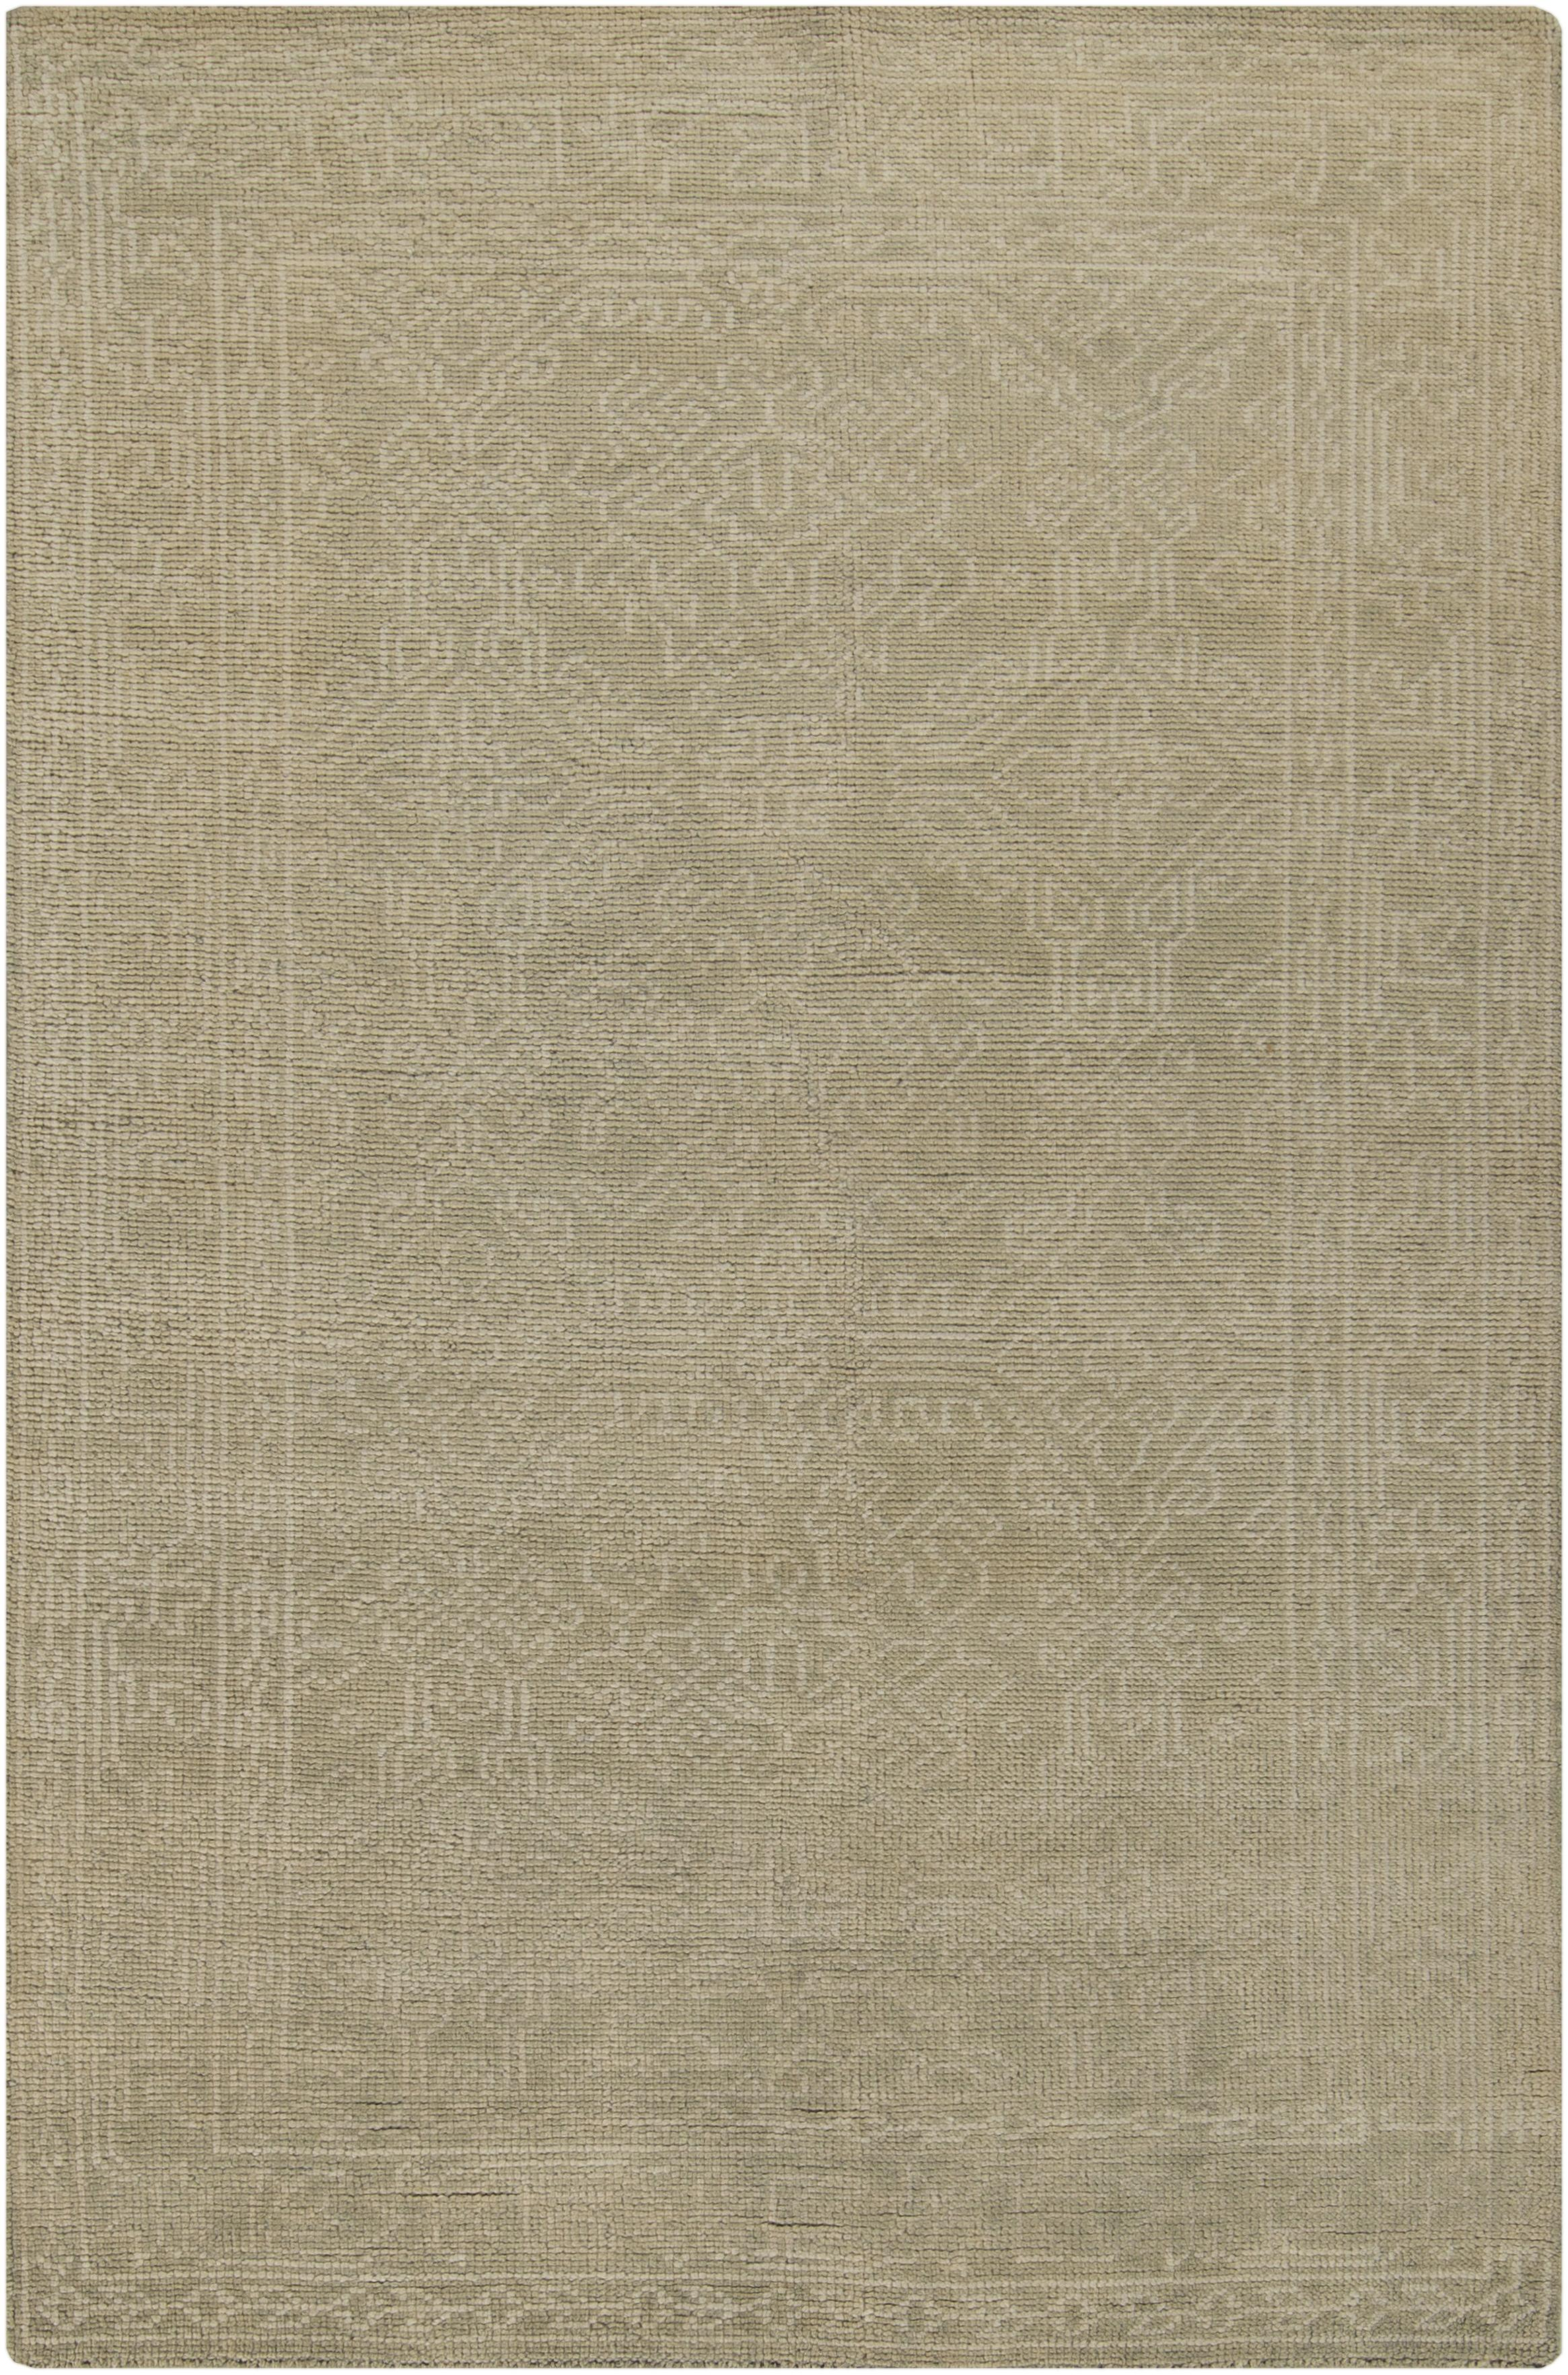 Surya Rugs Haven 2' x 3' - Item Number: HVN1215-23